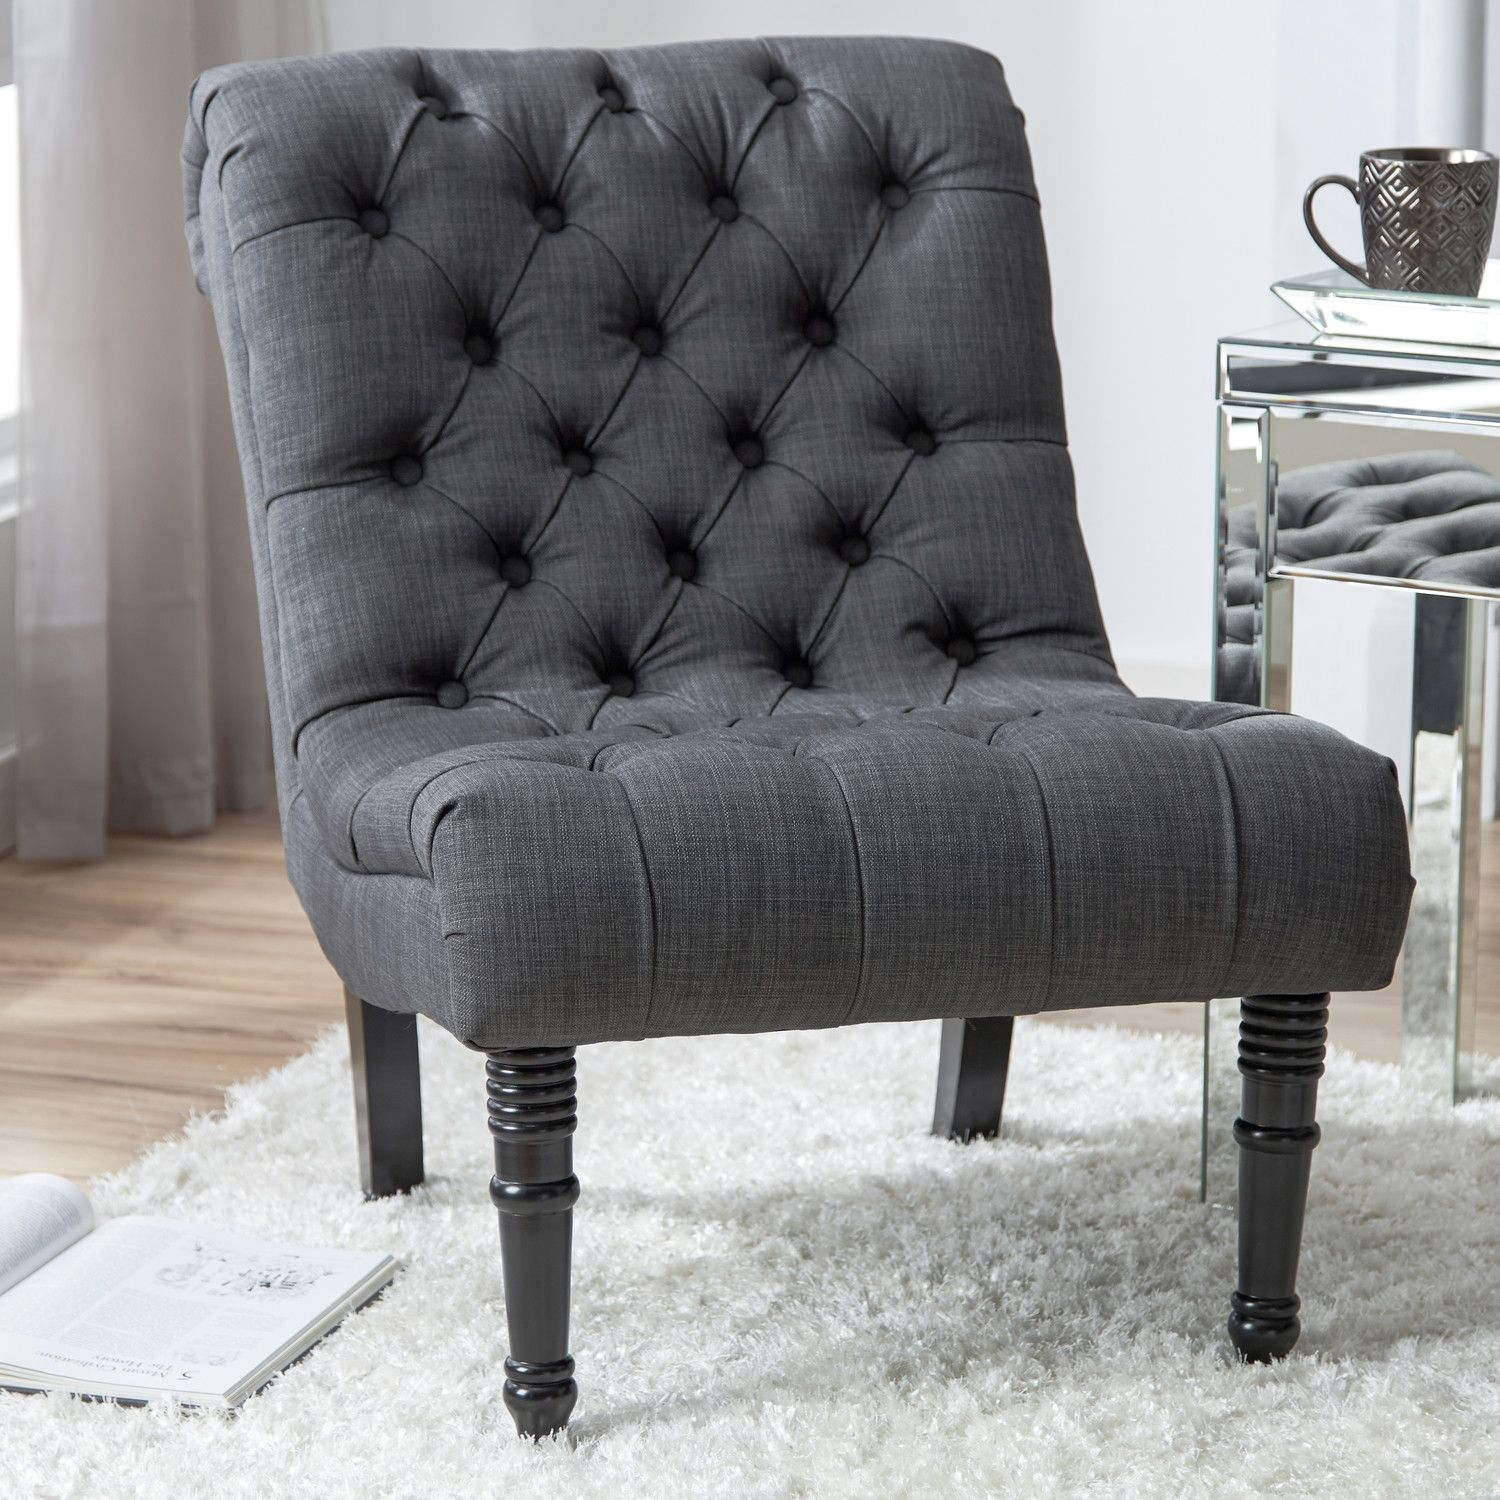 Using Accent Chairs Under 100 For Comfy Home Furniture Ideas